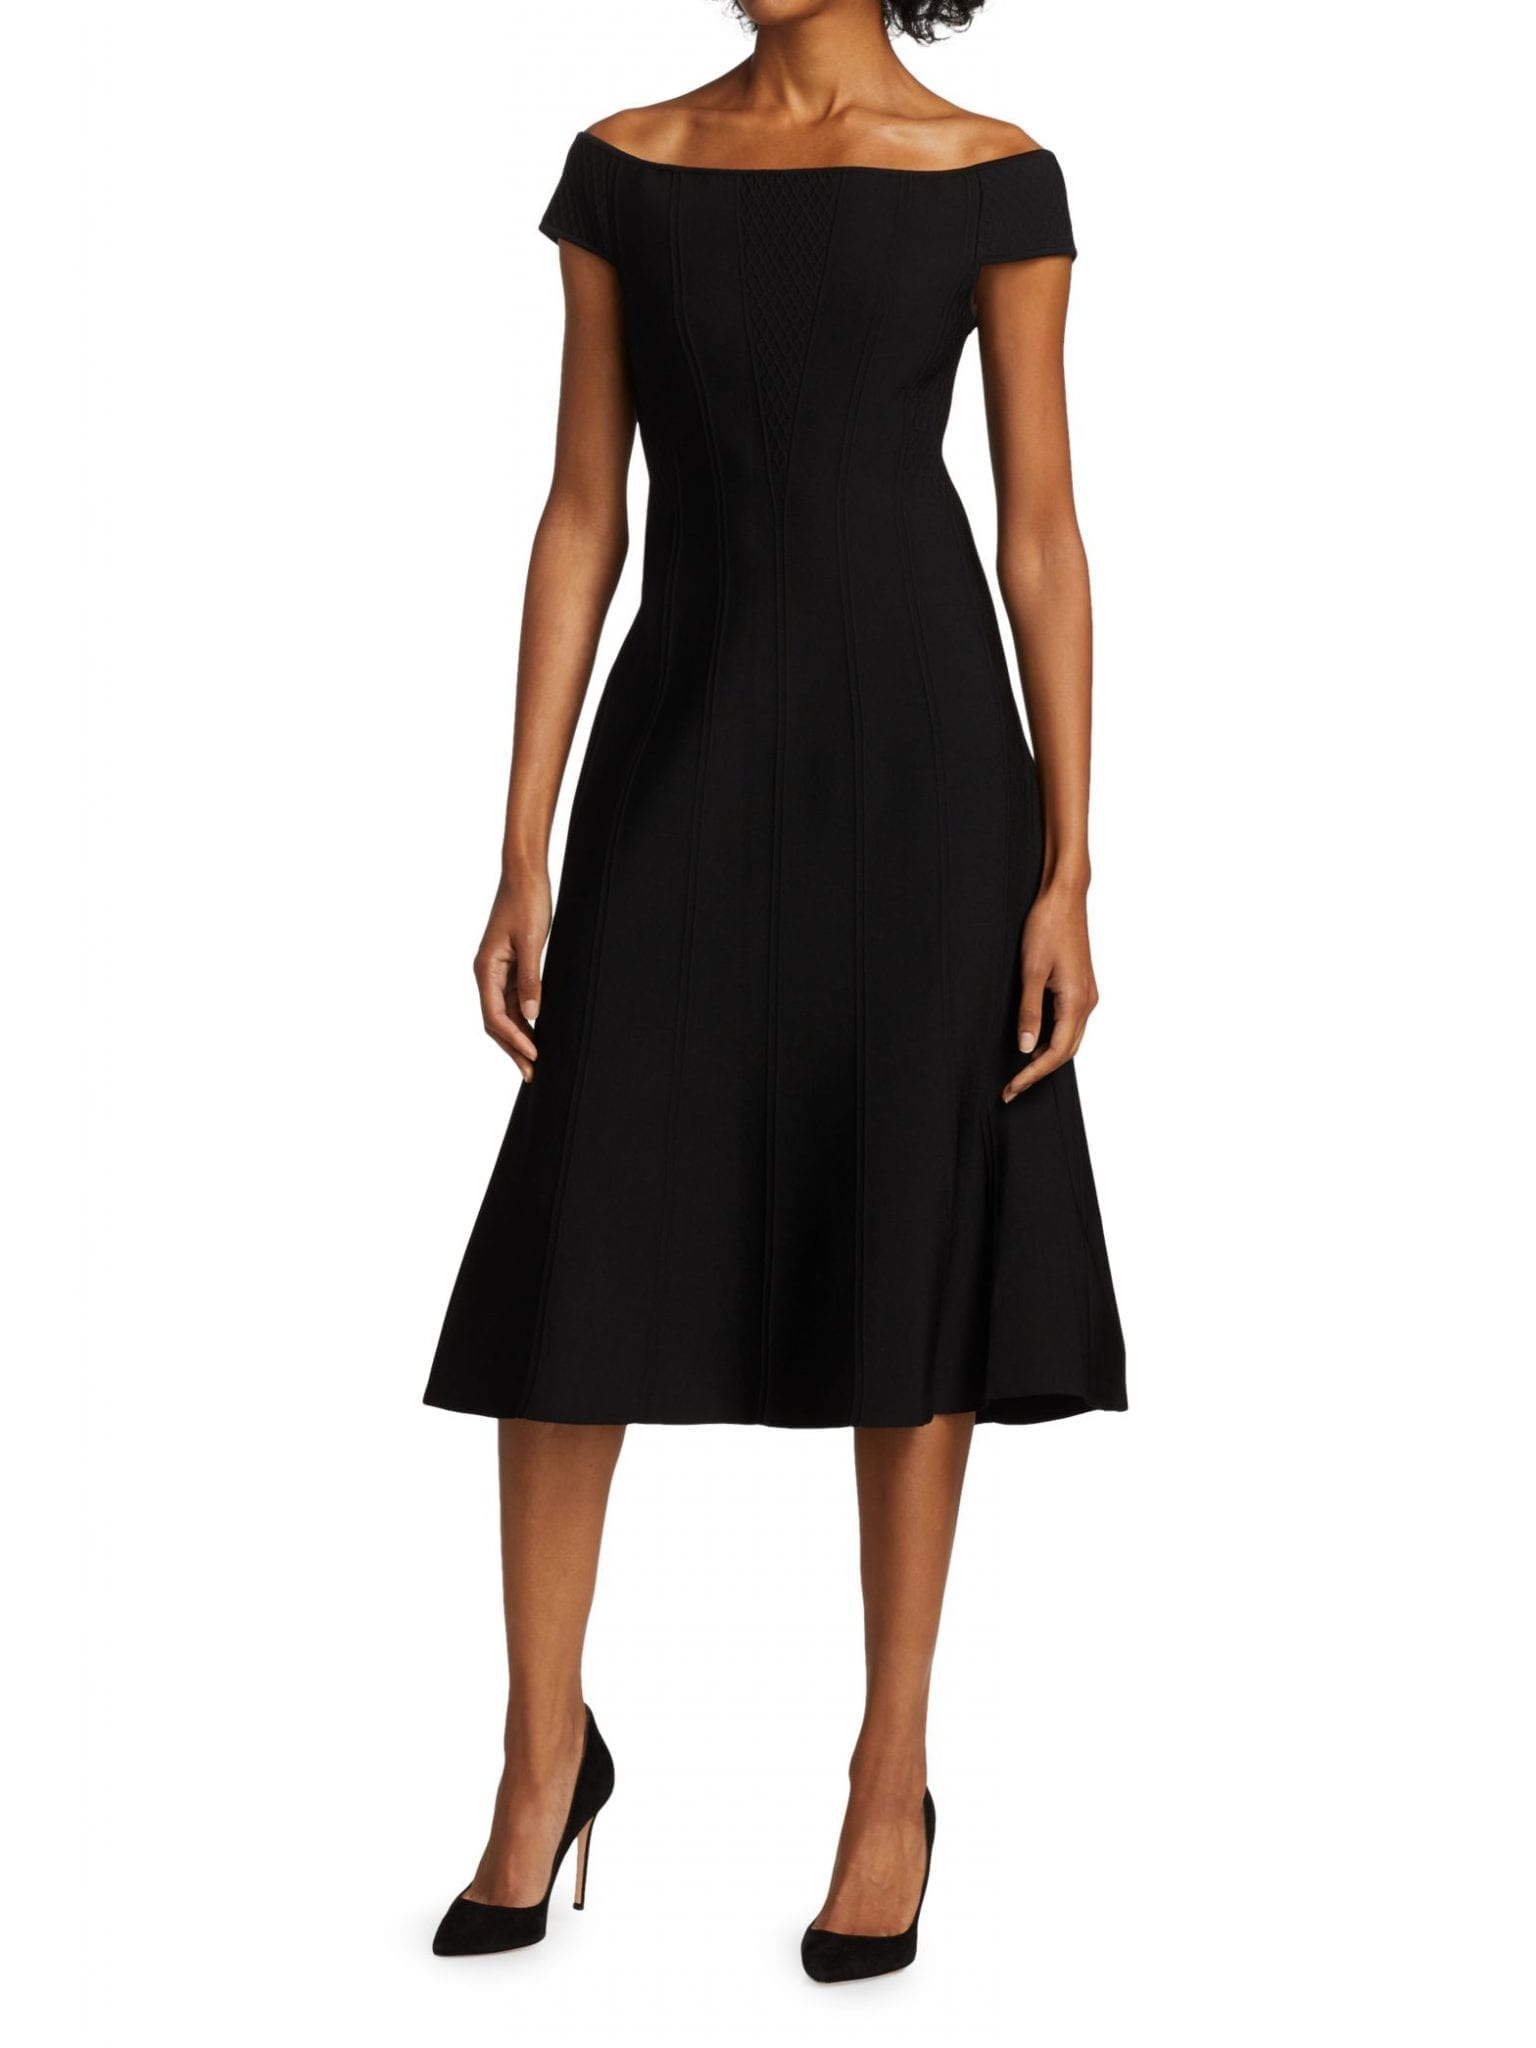 CAROLINA HERRERA Ottoman Corset Knit Midi Dress